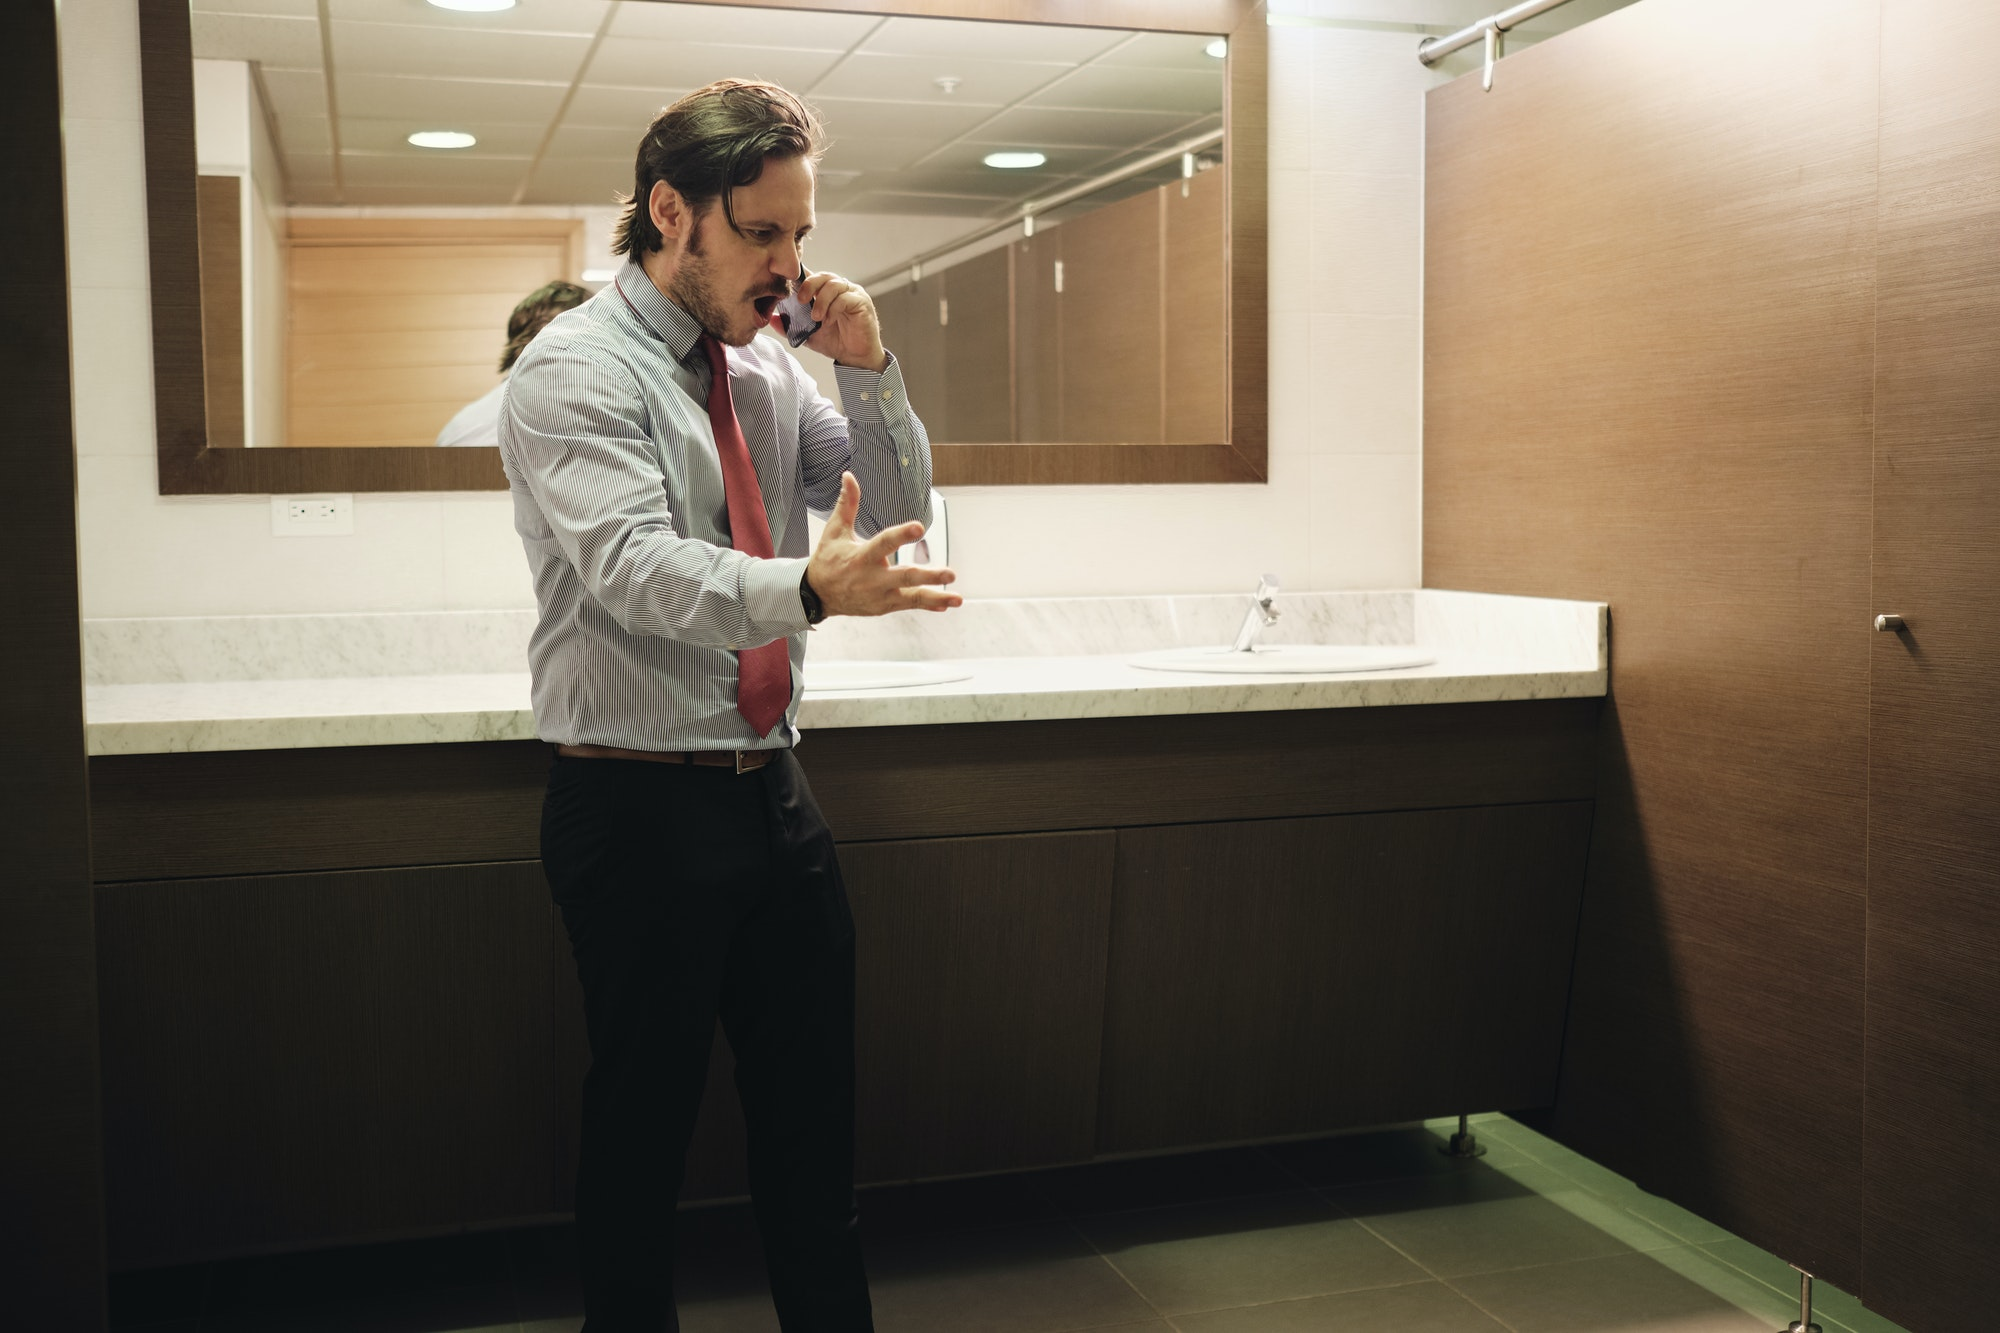 Furious Business Man Screaming On Cell Phone In Office Restroom